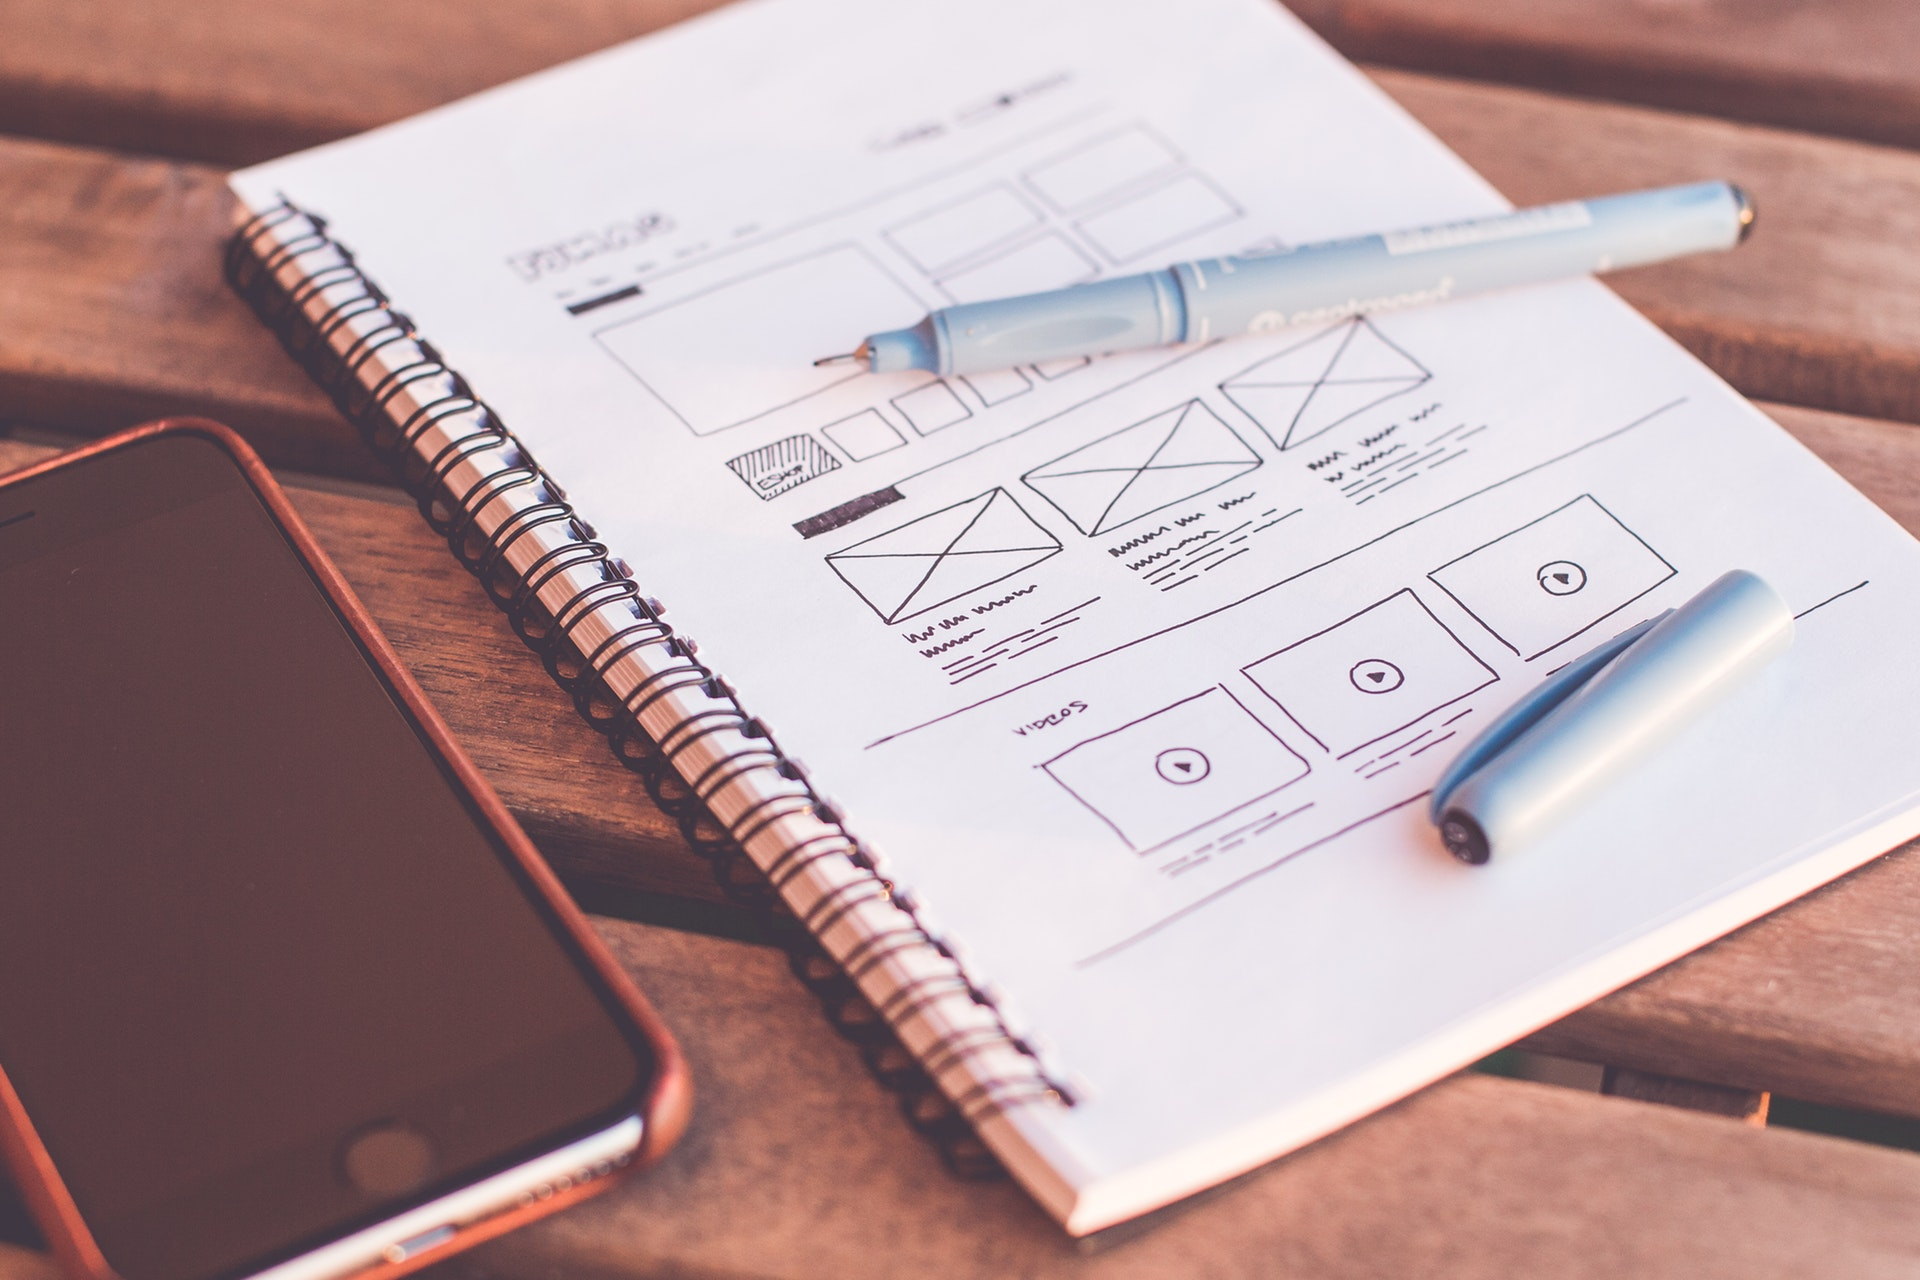 How We Grew Conversions 100% by Rethinking Our Design Strategy